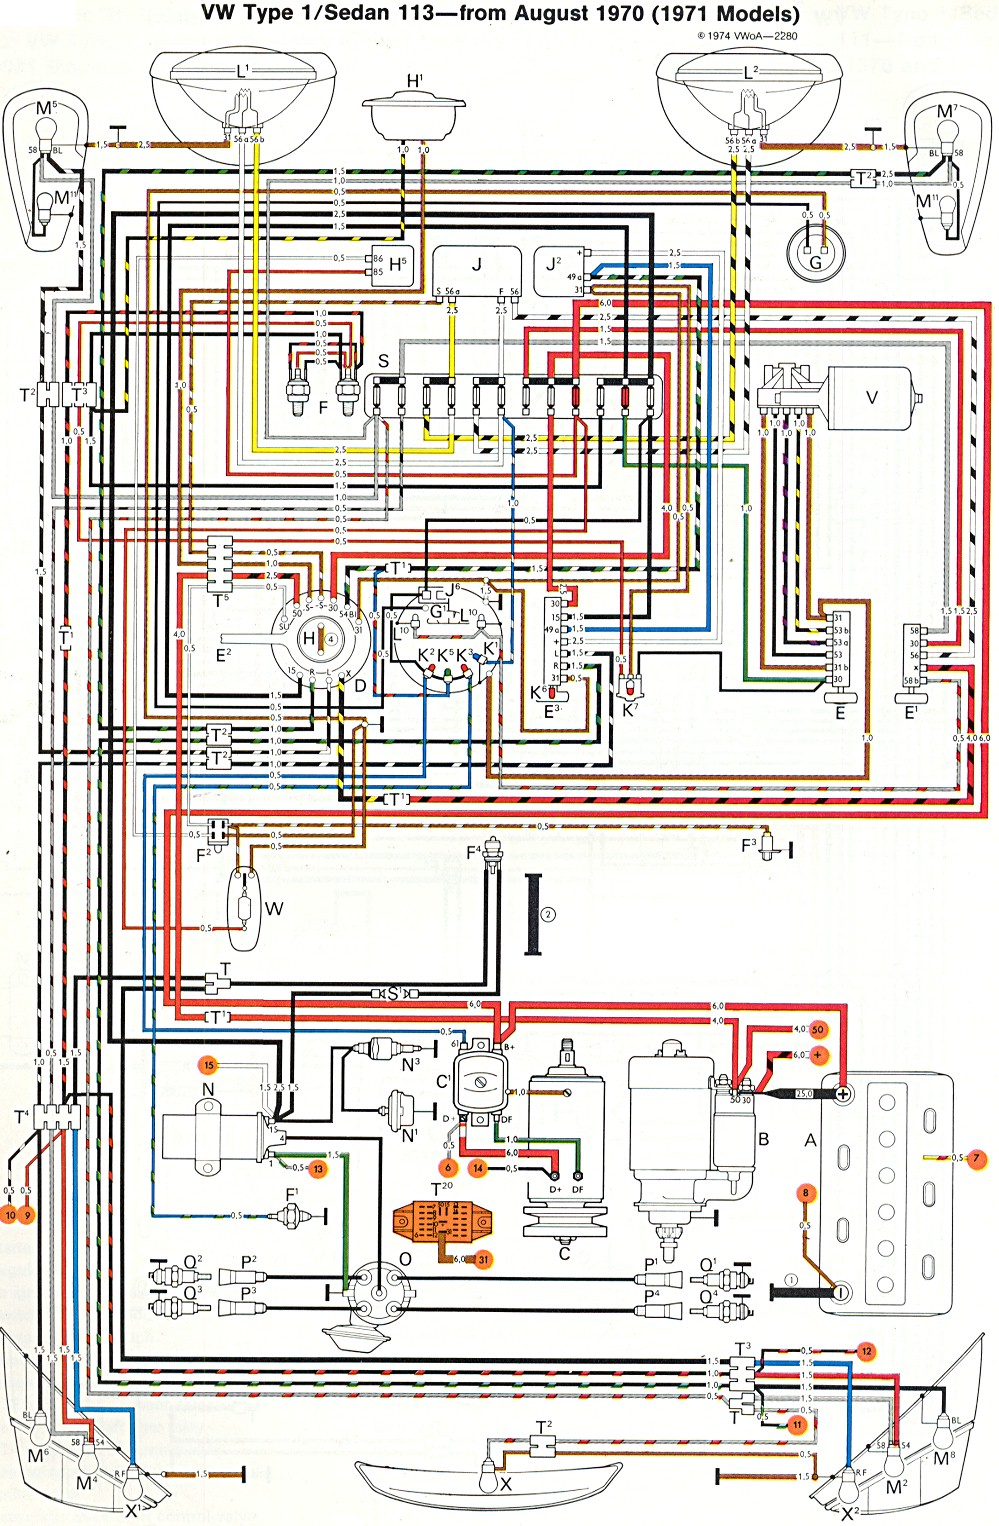 bug_super_71 2002 vw beetle wiring diagram altenator wiring diagram 2002 vw 2002 vw cabrio wiring diagram at edmiracle.co